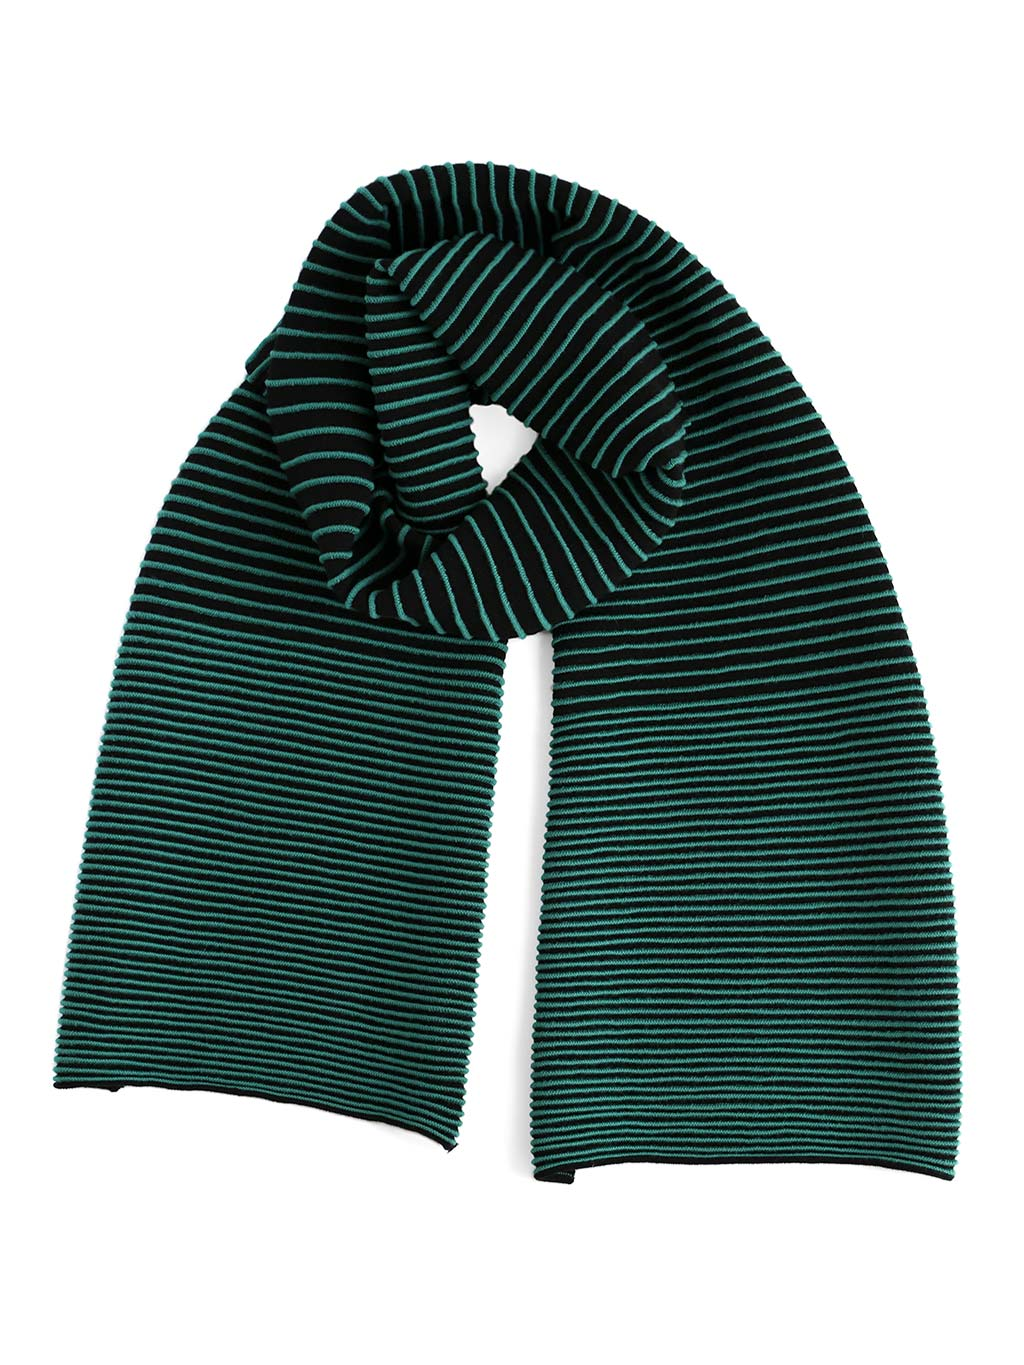 Our soft merino wool scarf has a unique texture with a gradient of knitted ribs. A black and green knitted scarf.